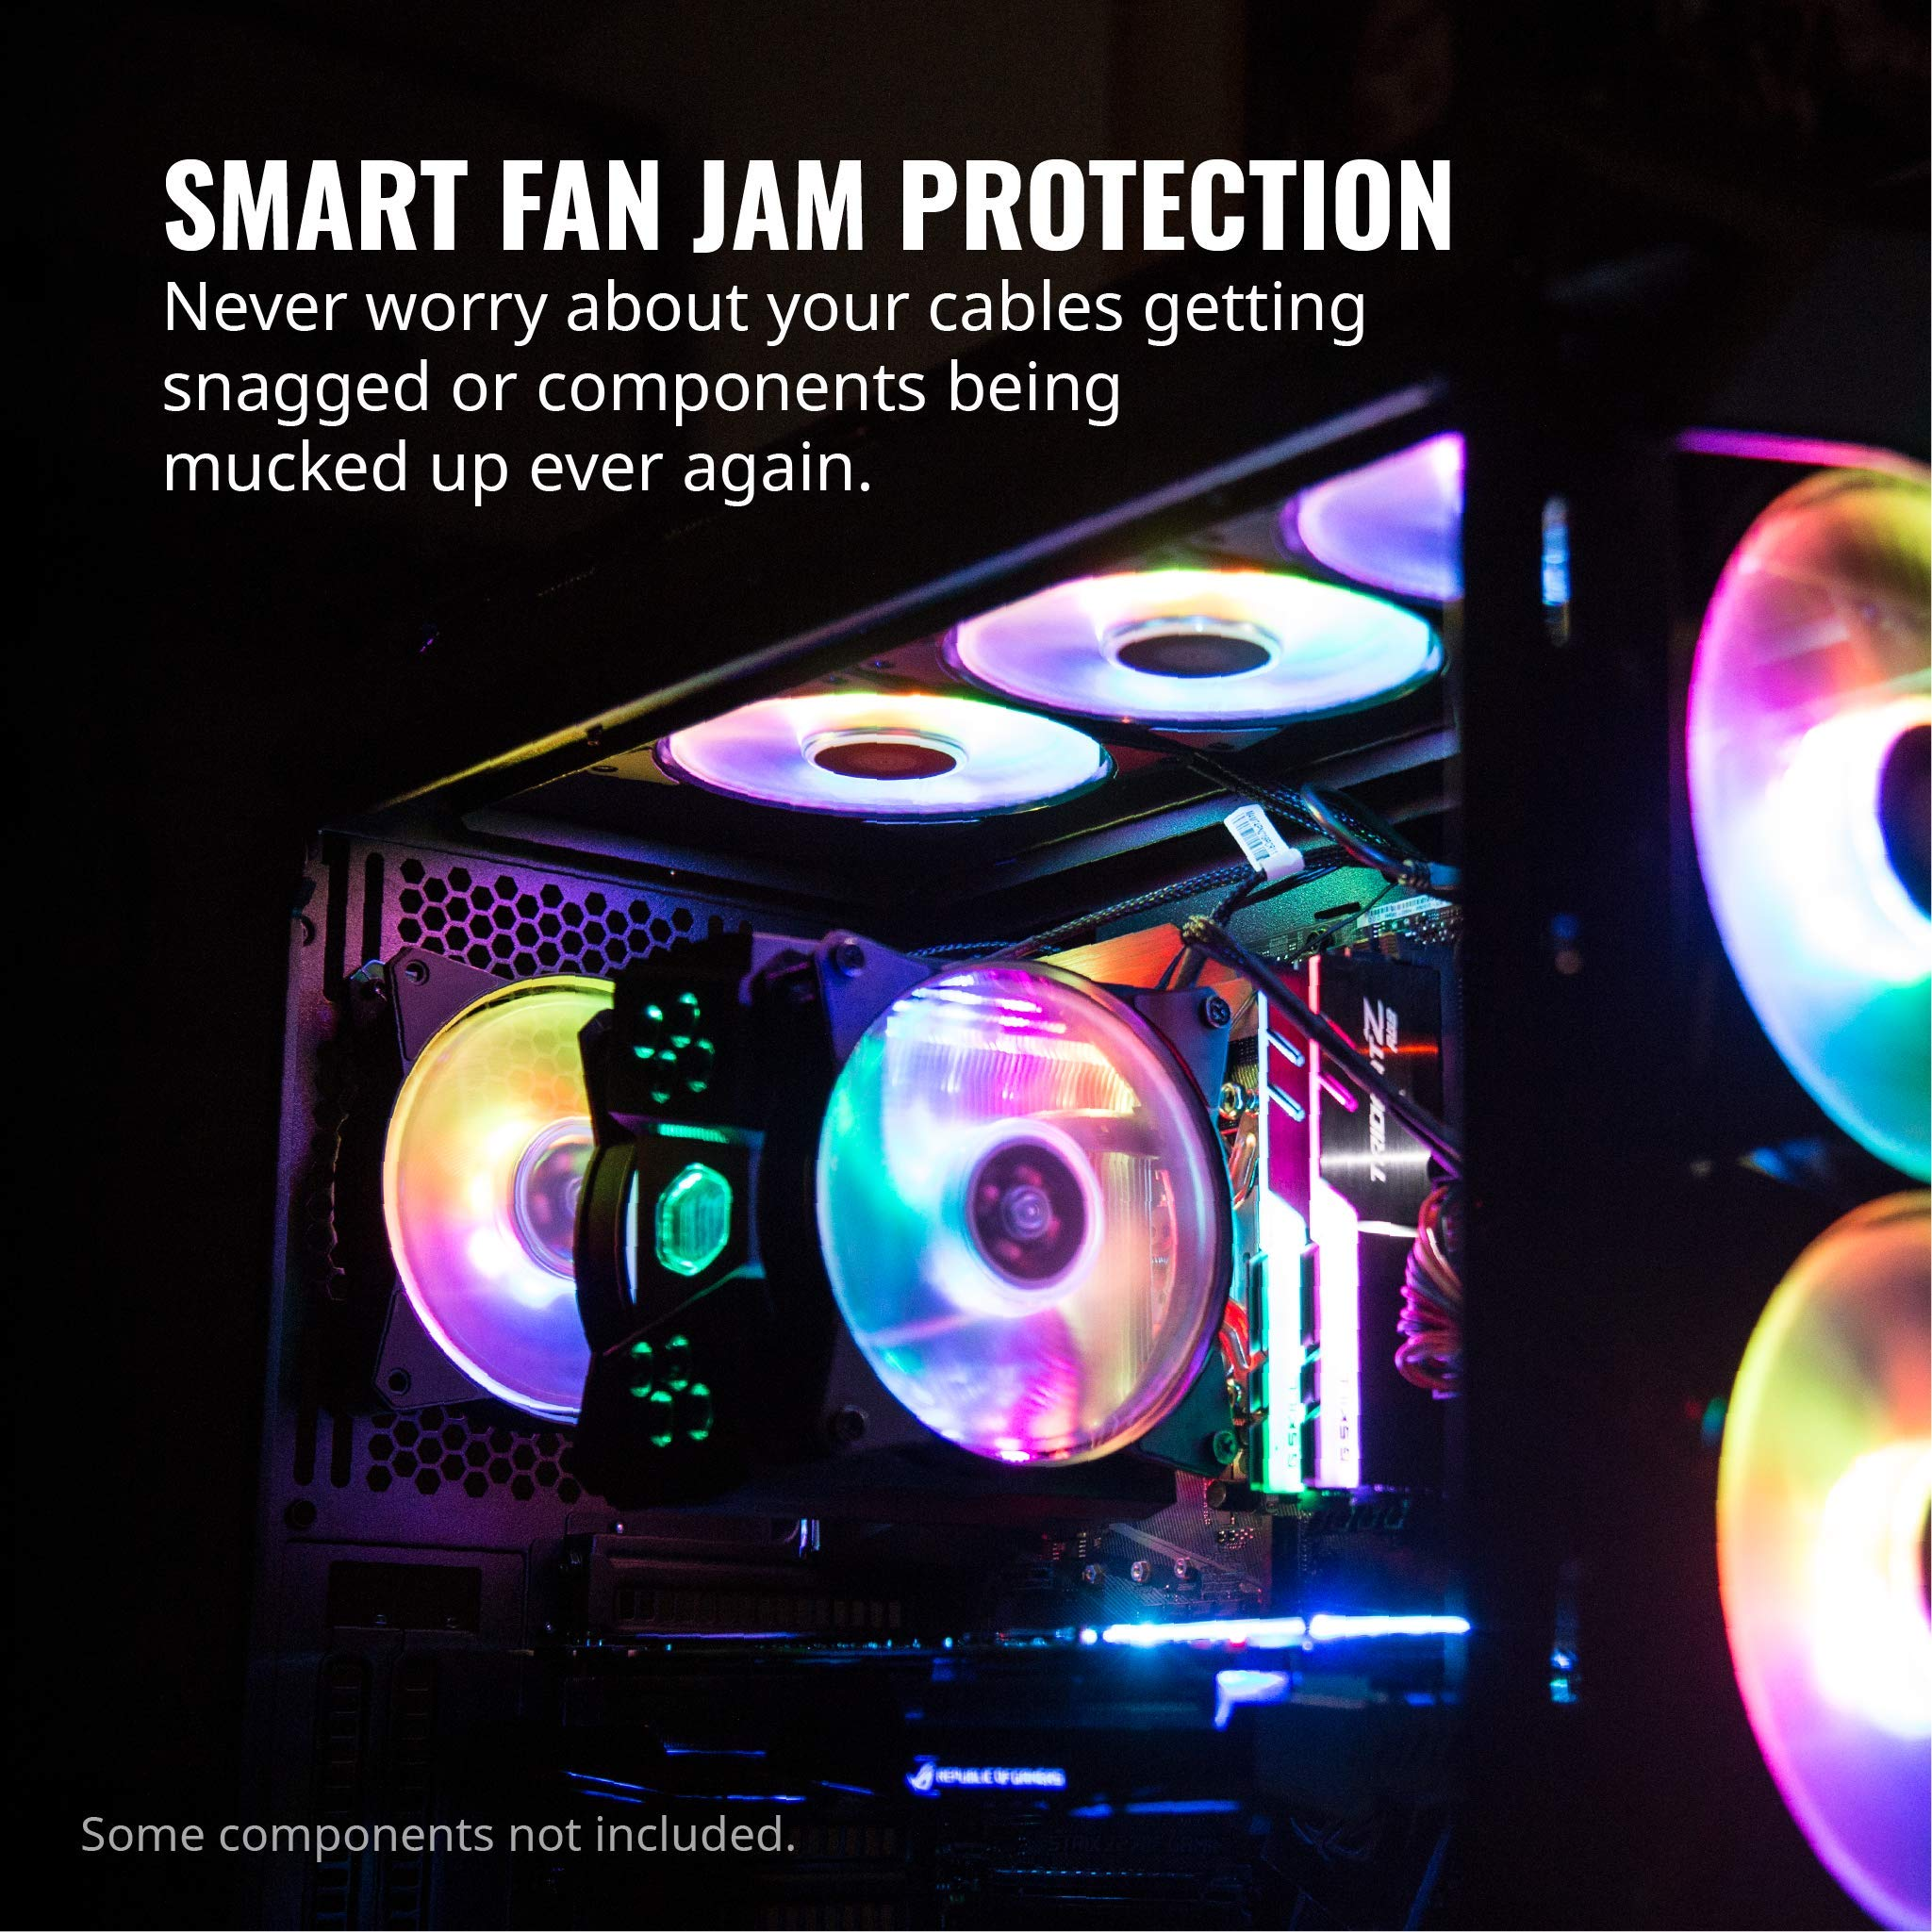 Cooler Master R4-120R-203C-R1 Master Fan MF120R- 120mm Air Balance Addressable ARGB 3in1 Case Fans Computer Cases CPU Coolers and Radiators by Cooler Master (Image #4)